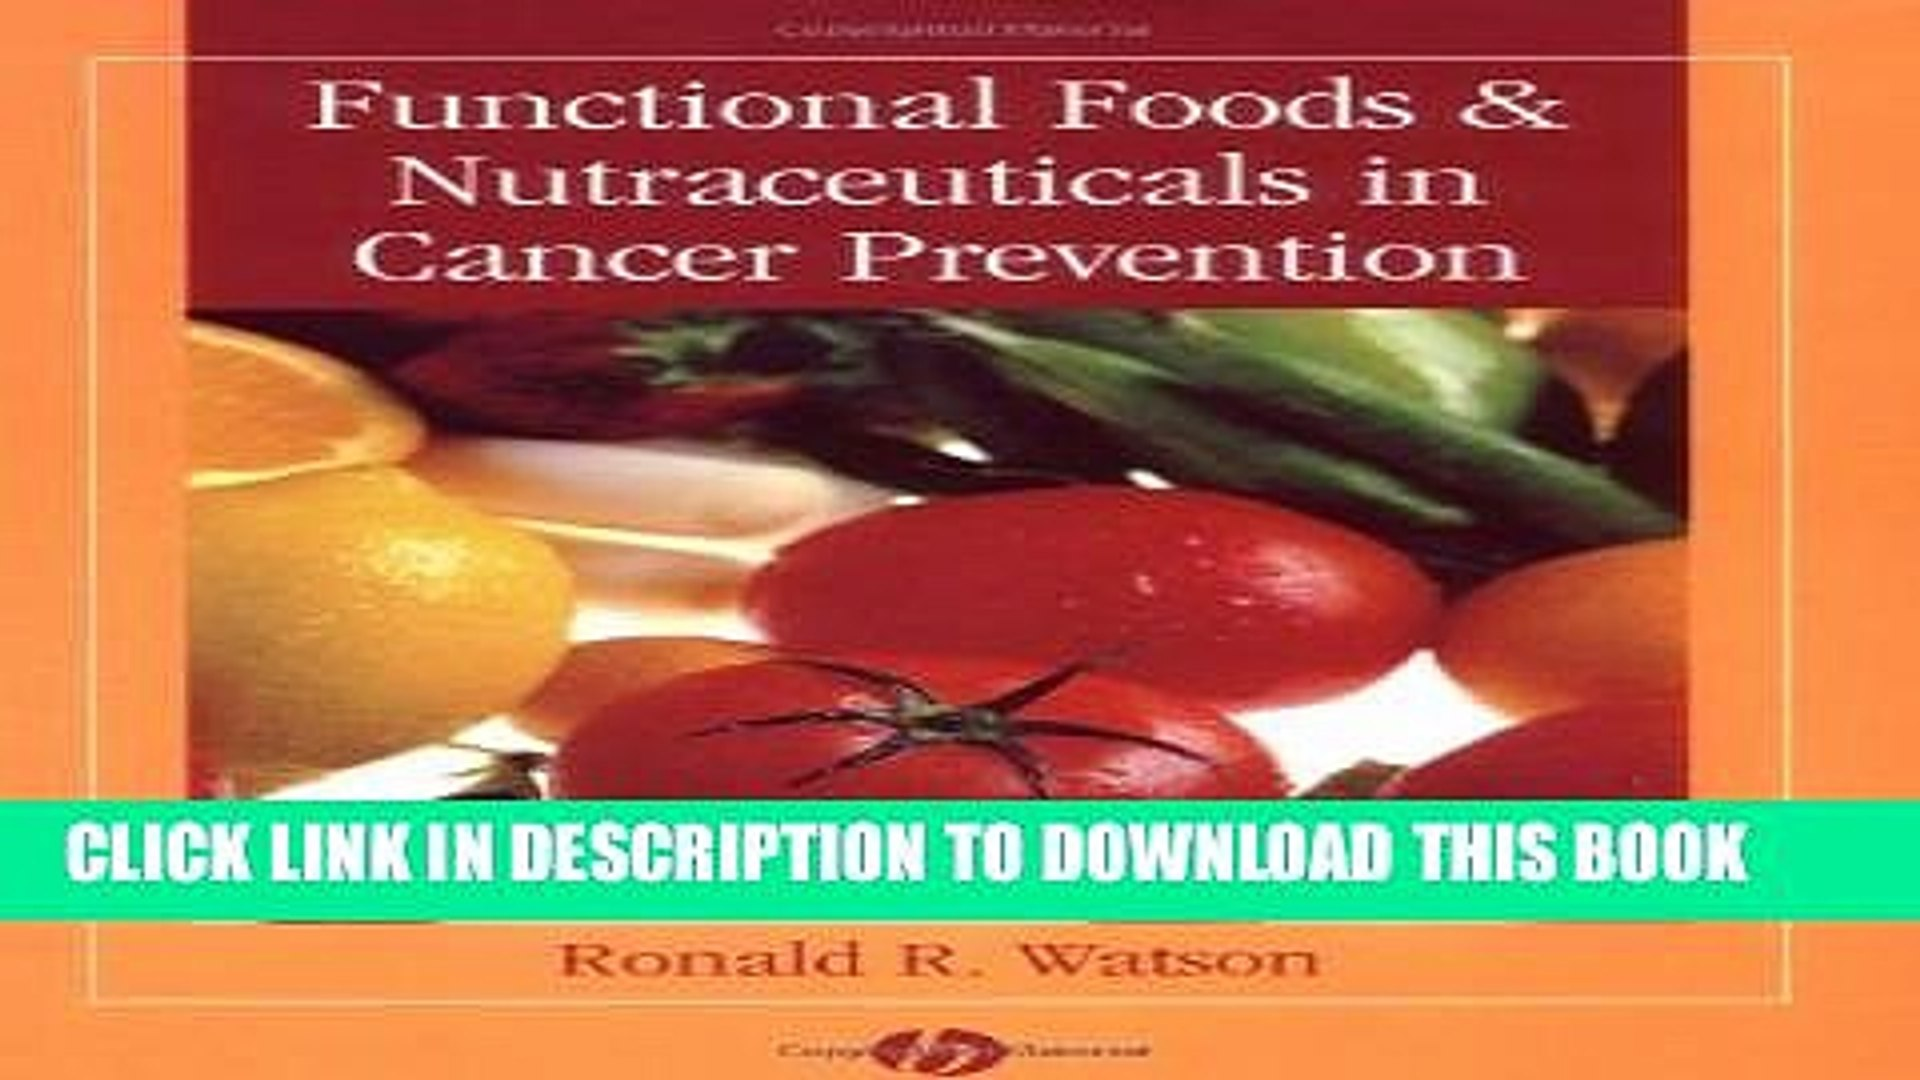 Functional Foods & Nutraceuticals in Cancer Prevention